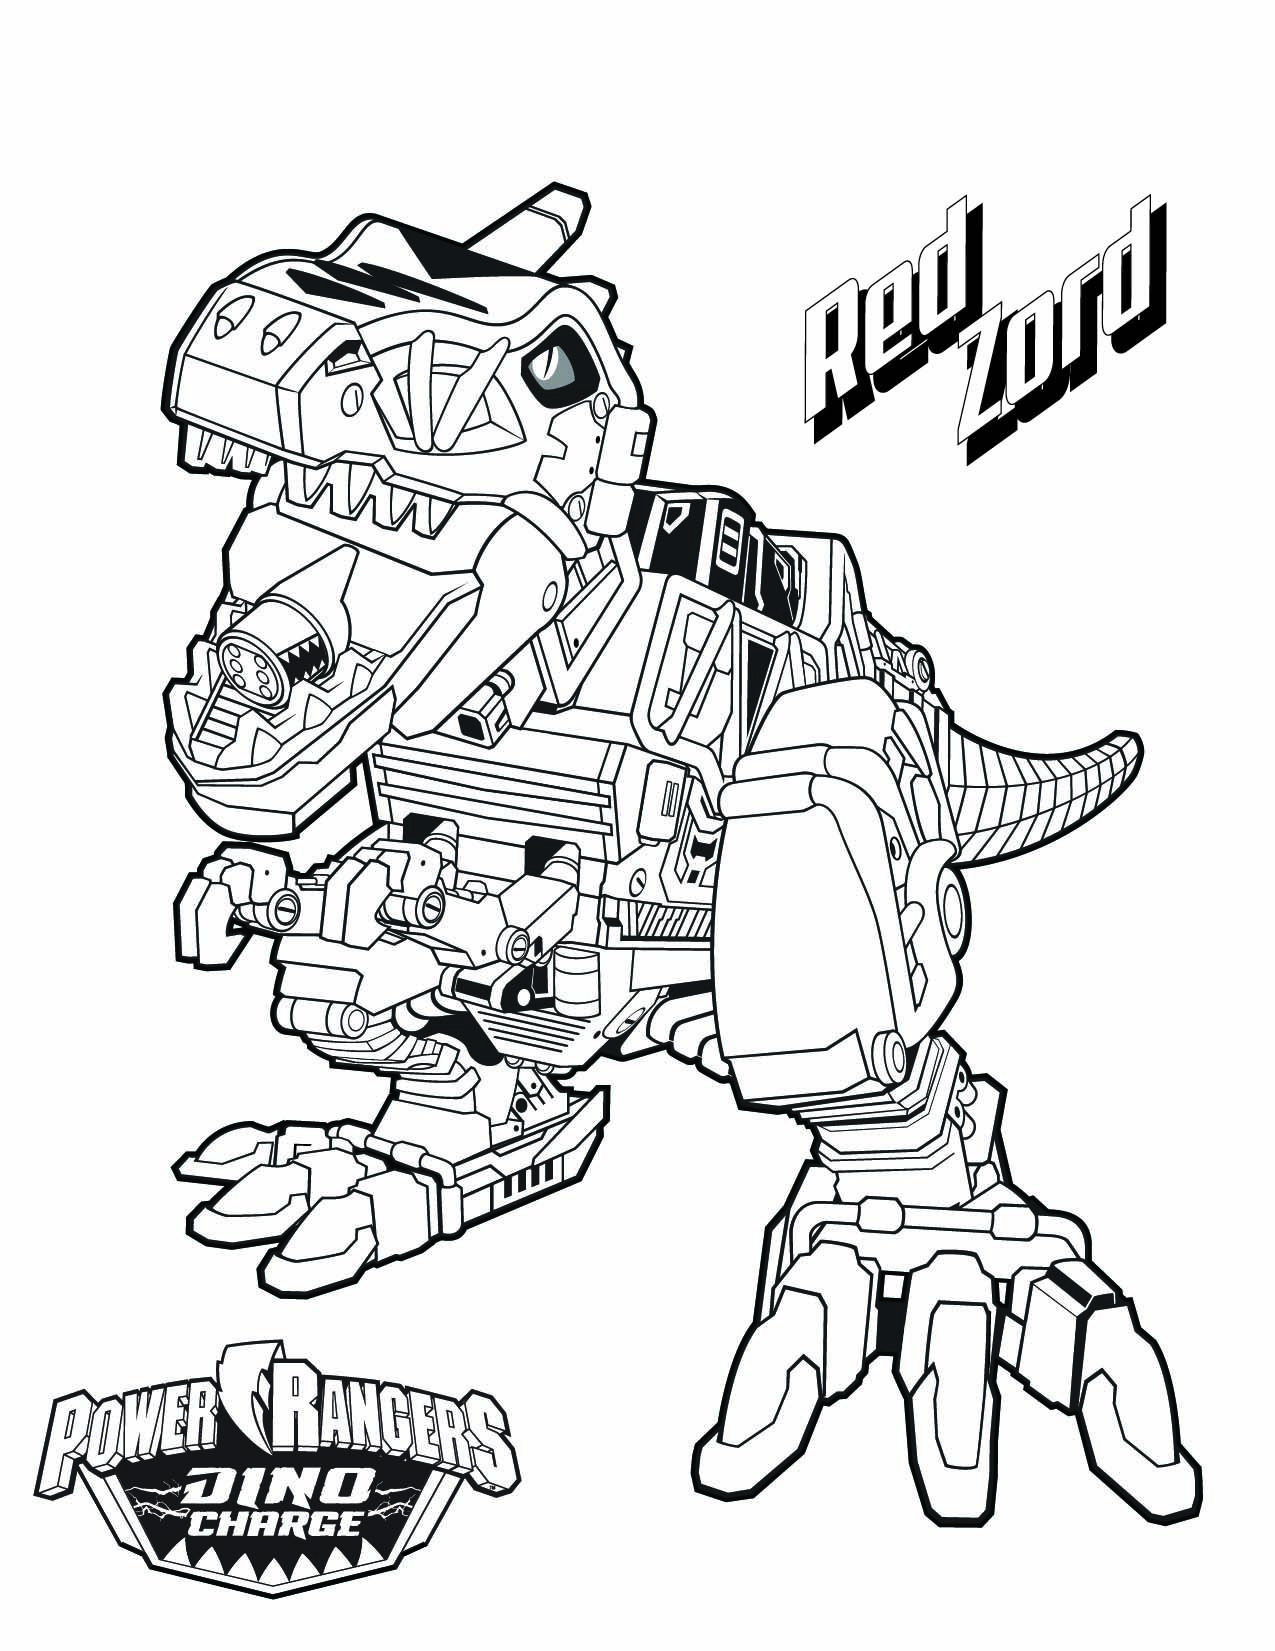 Free online coloring pages of power rangers - Find This Pin And More On Power Rangers Coloring Pages By Powerrangers